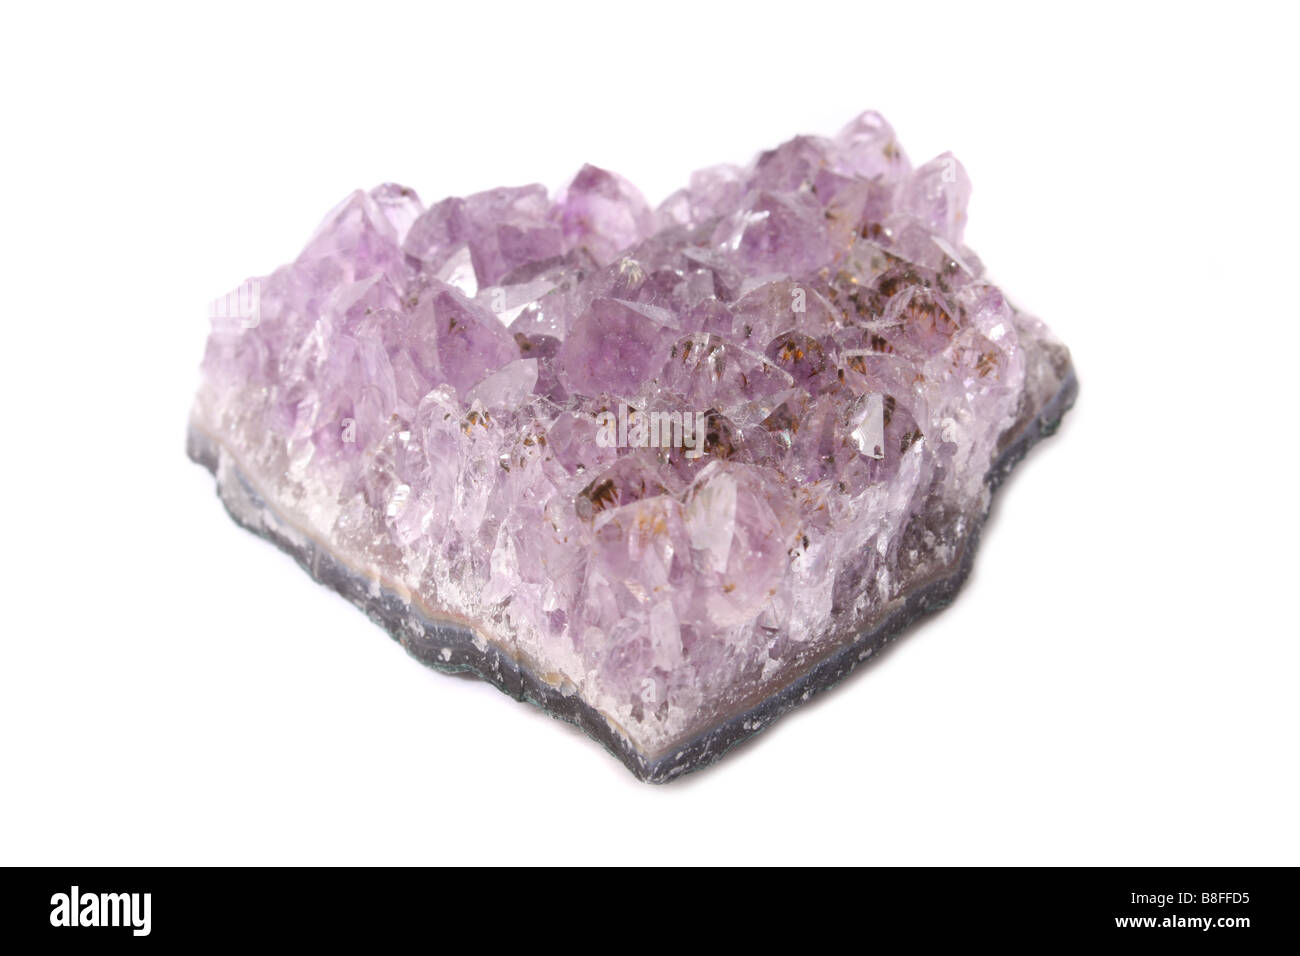 Amethyst crystal - Stock Image